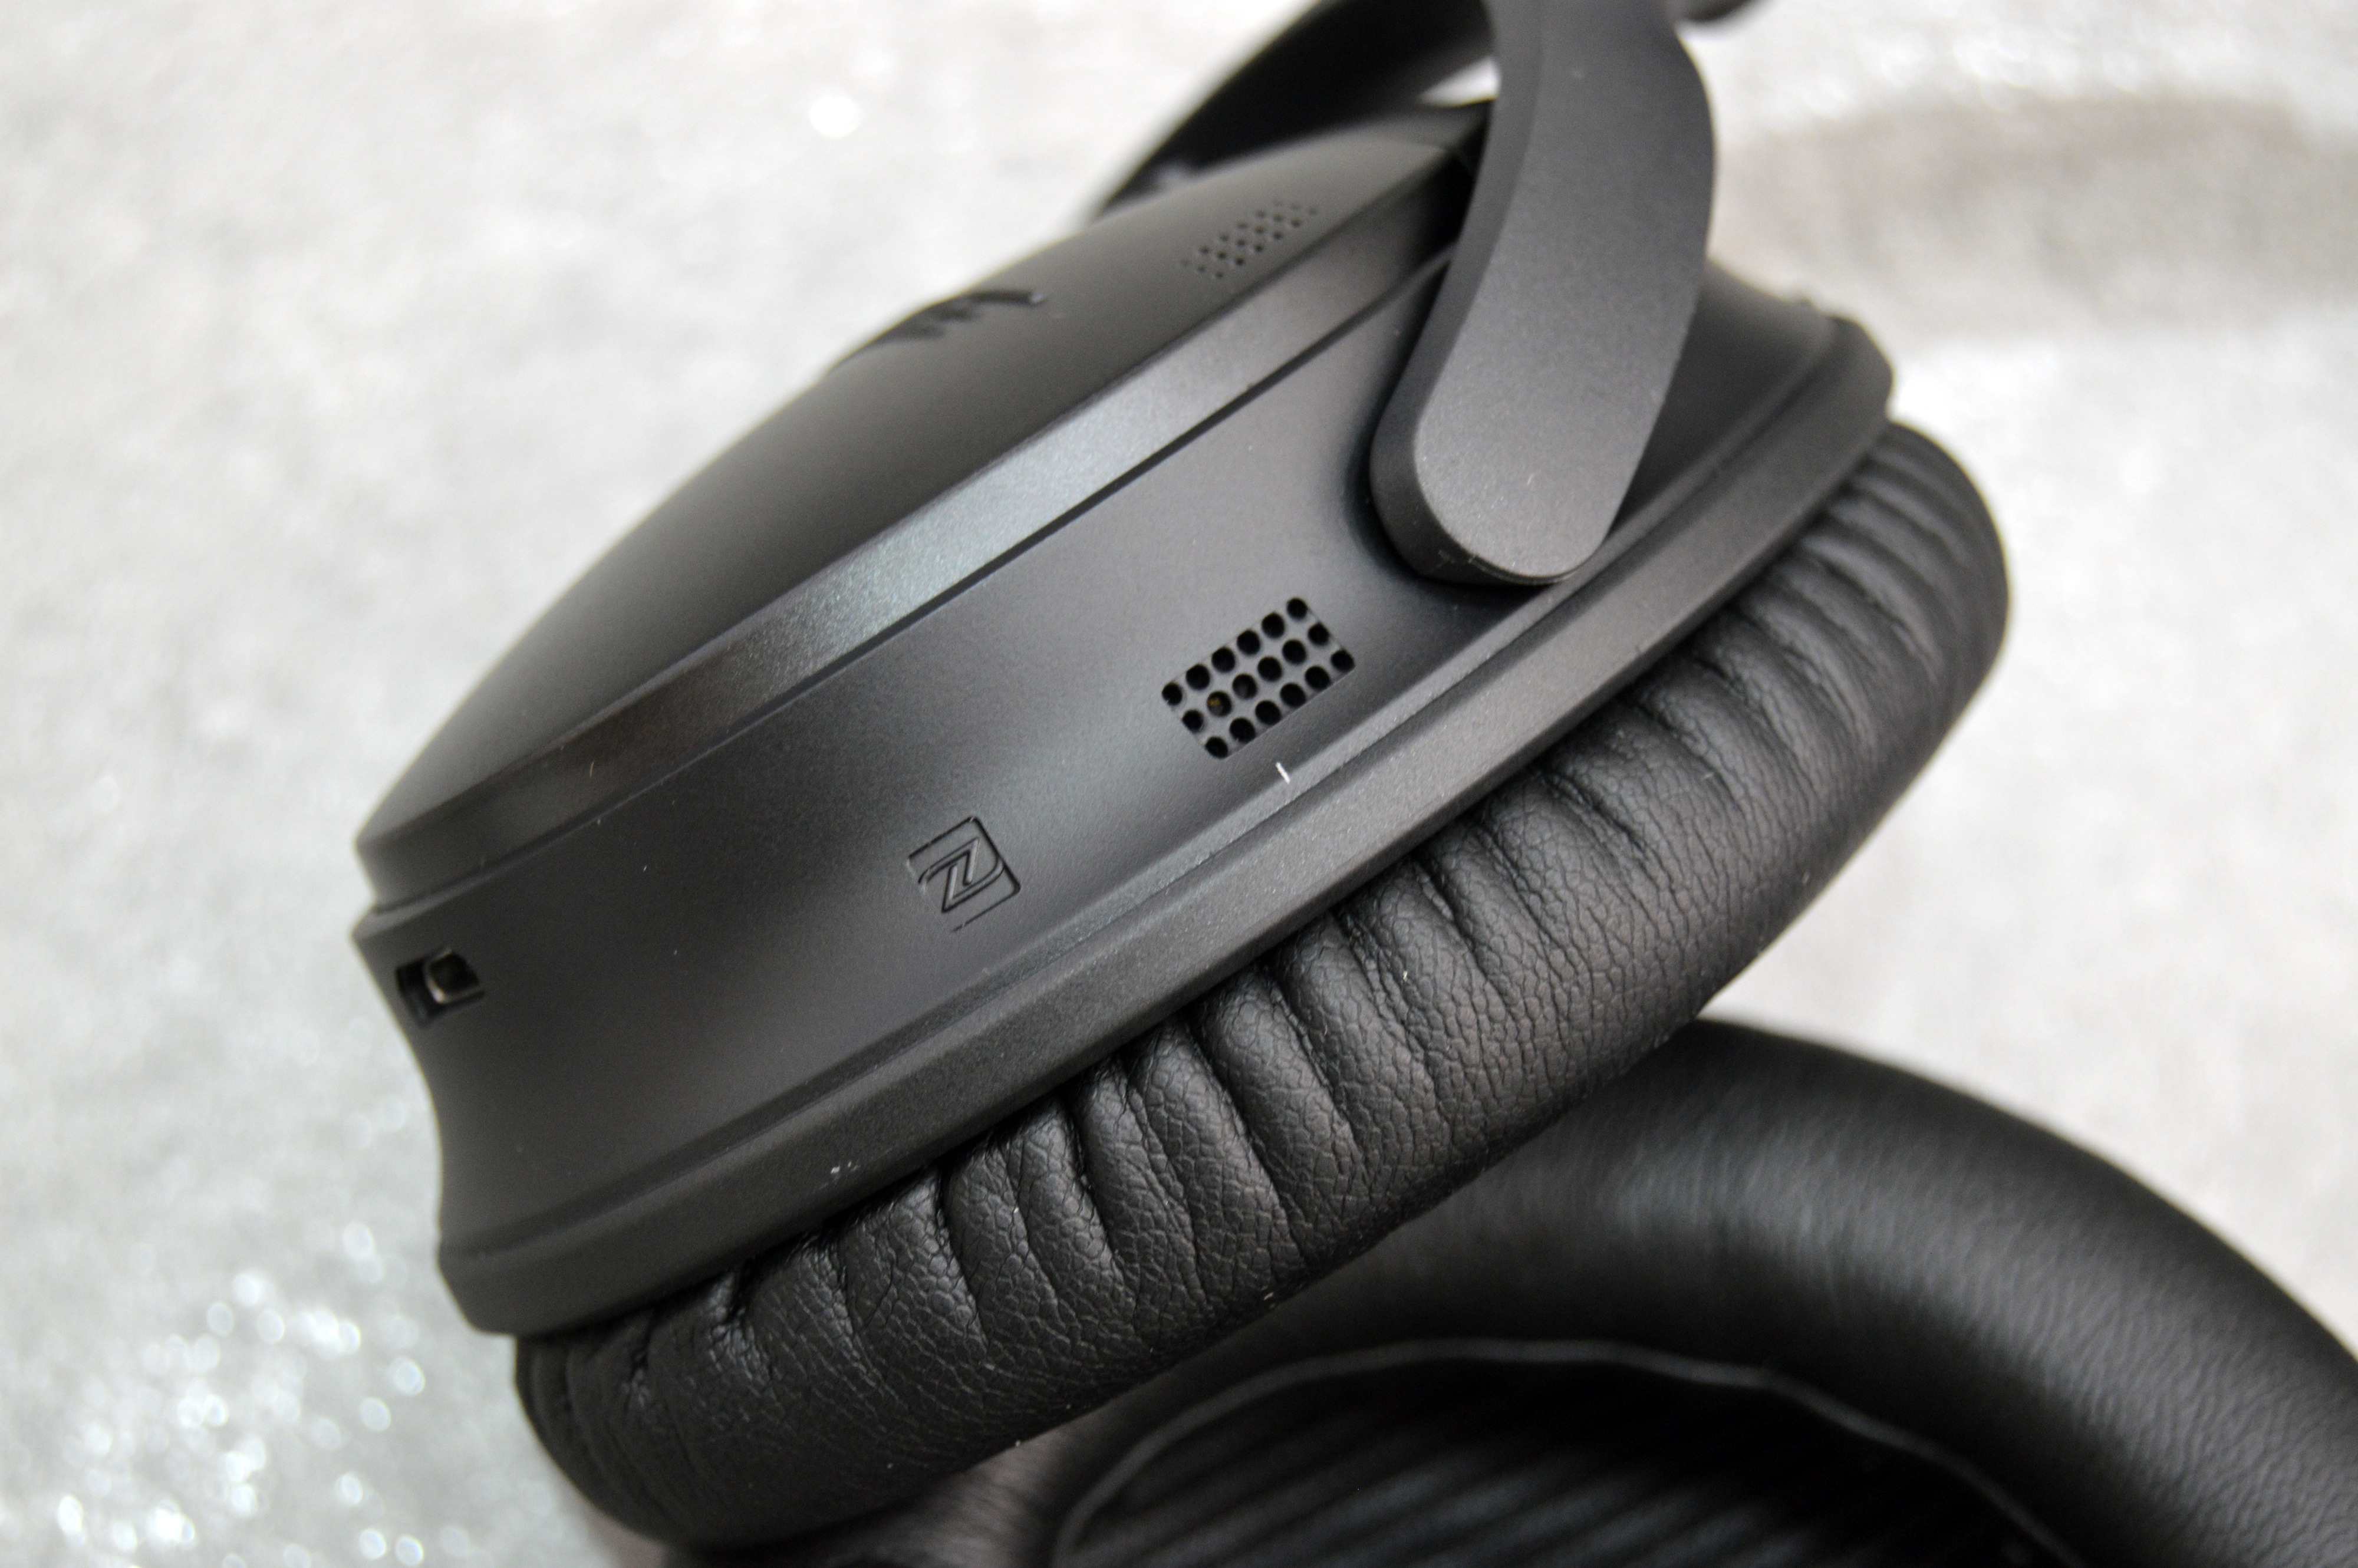 Bose Quietcomfort 35 Review Superb Quiet And Comfort Come With A Qc25 Headphone For Samsung Devices Black Qc35 Controls Nfc